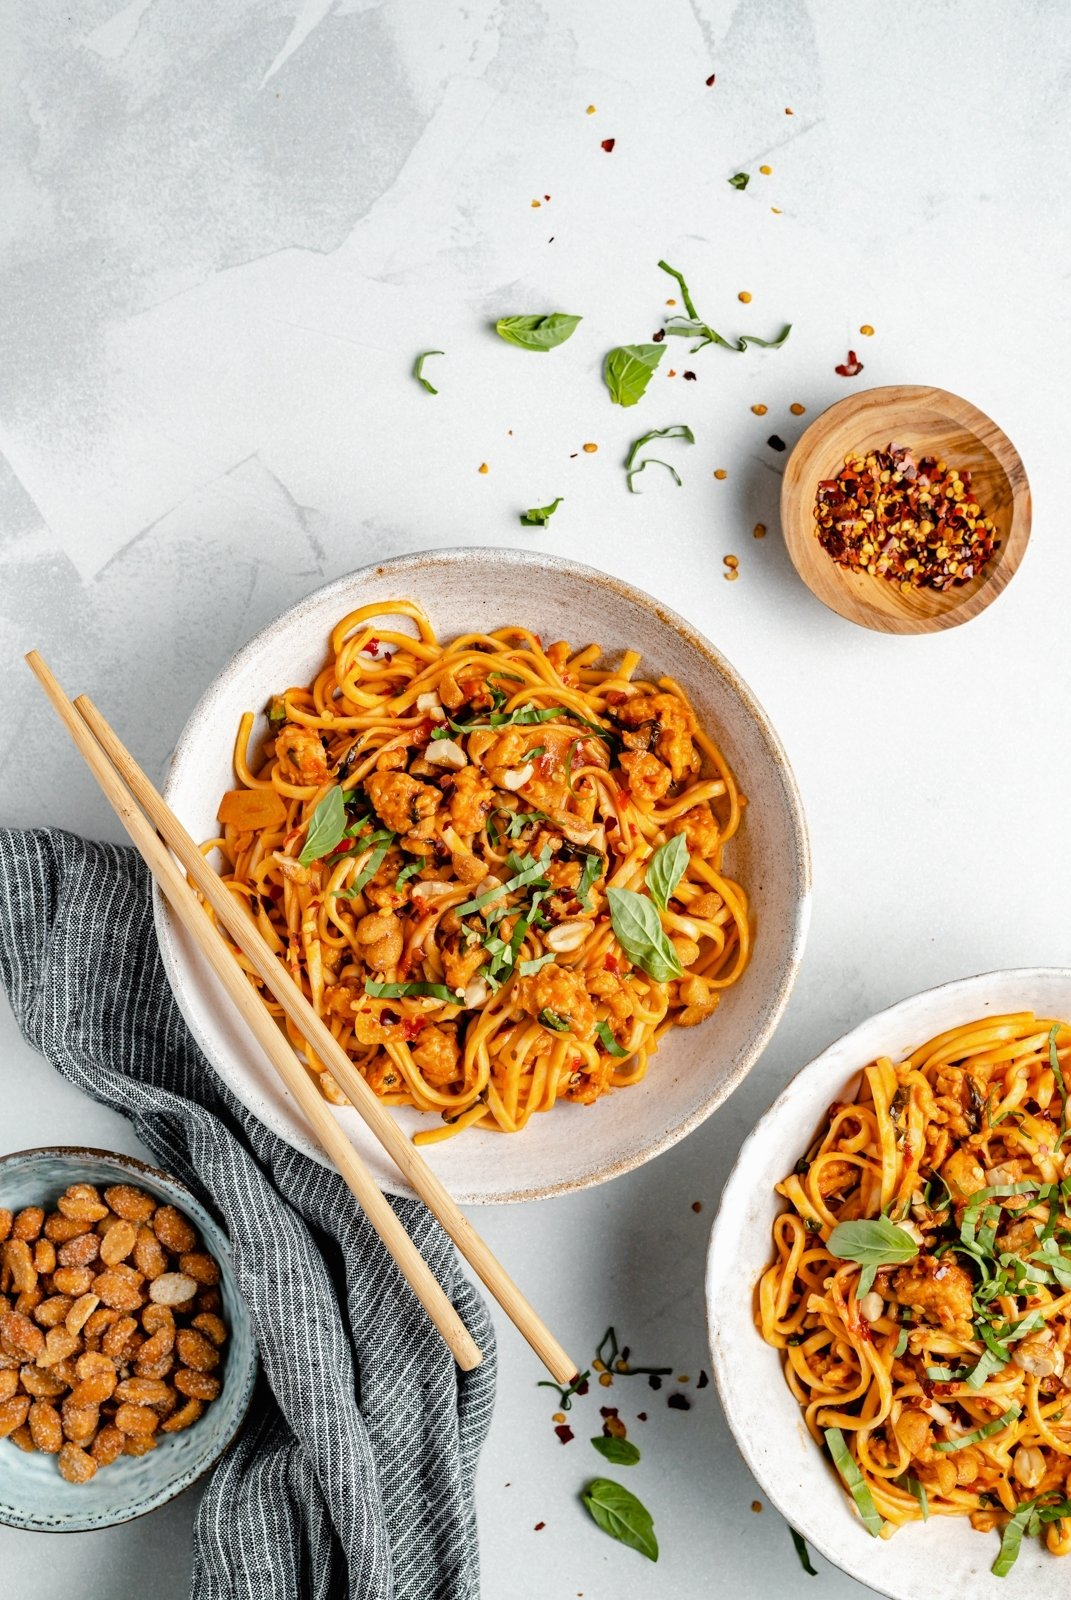 hot chili chicken noodles in bowls with chopsticks